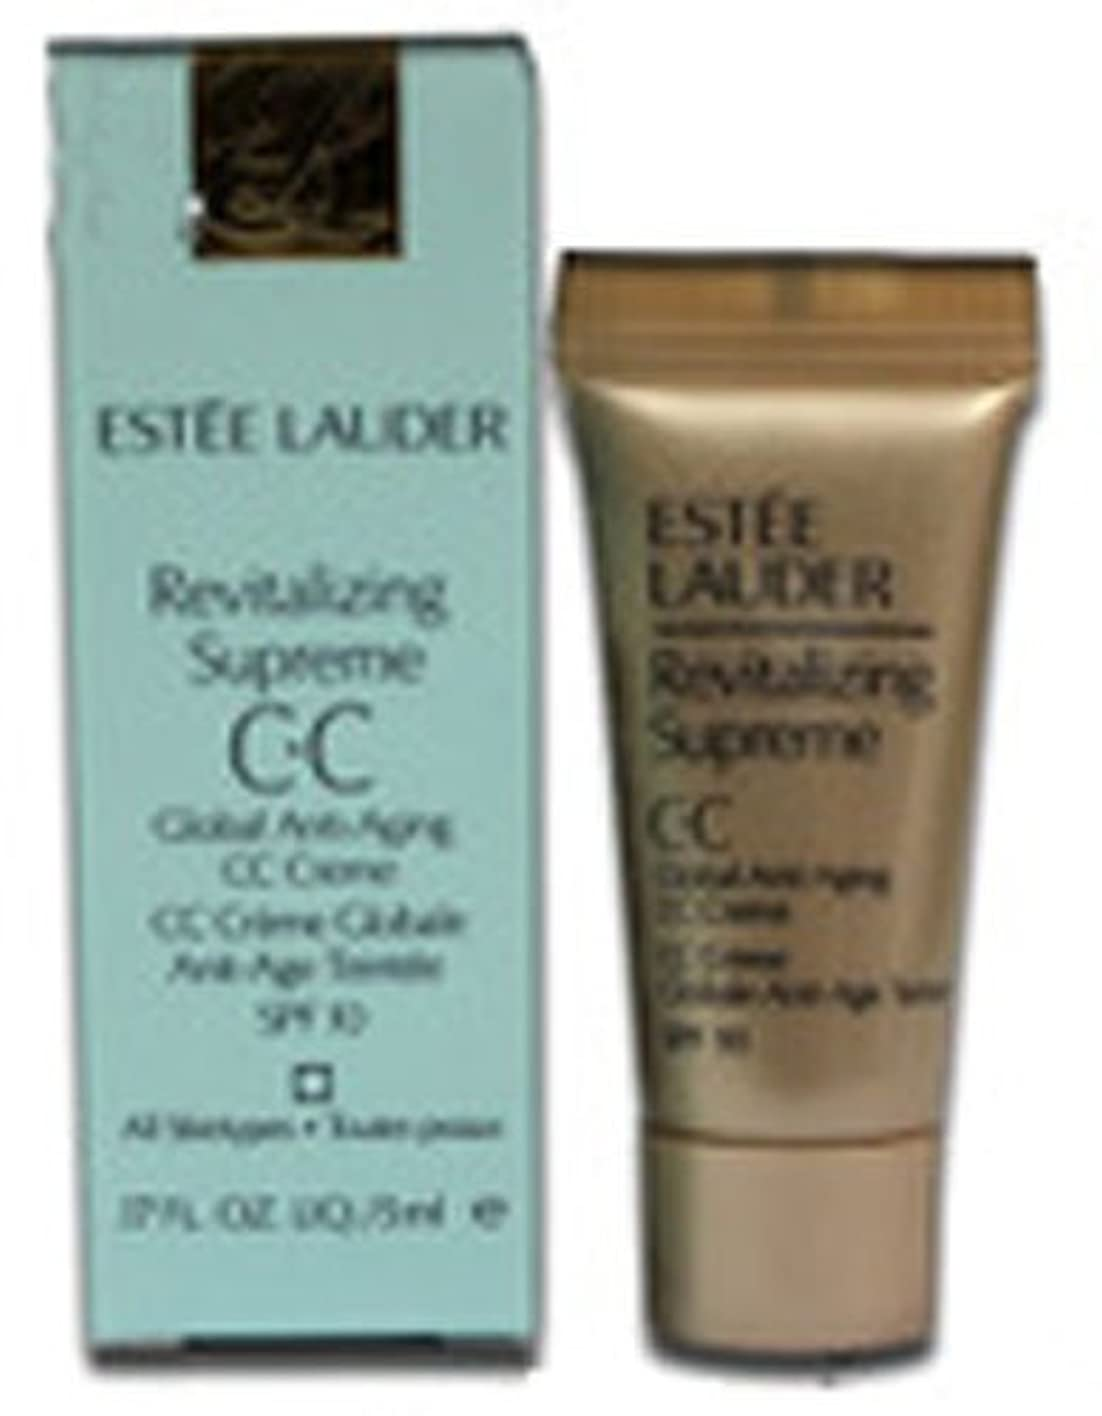 永続ぬれた残酷エスティローダー REVITALIZING SUPREME GLOBAL AG C?C CREME SPF10 SPF10 5ml ESTEE LAUDER [並行輸入品]